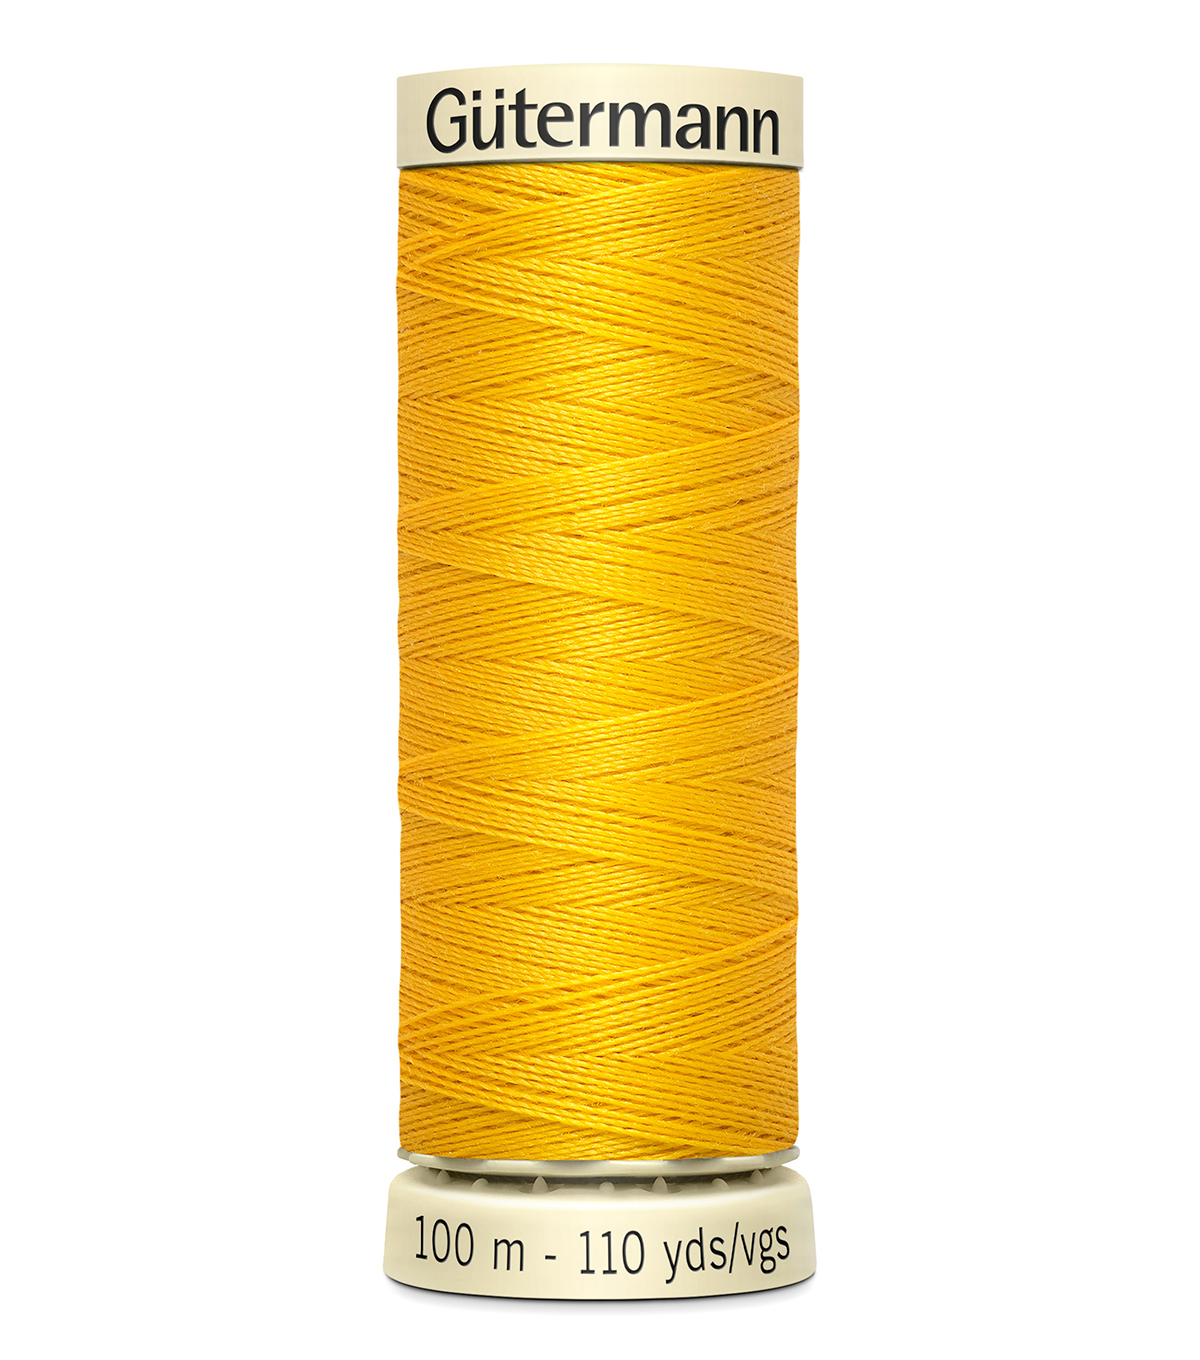 Gutermann Sew All Polyester Thread 110 Yards-Oranges & Yellows , Goldenrod #850